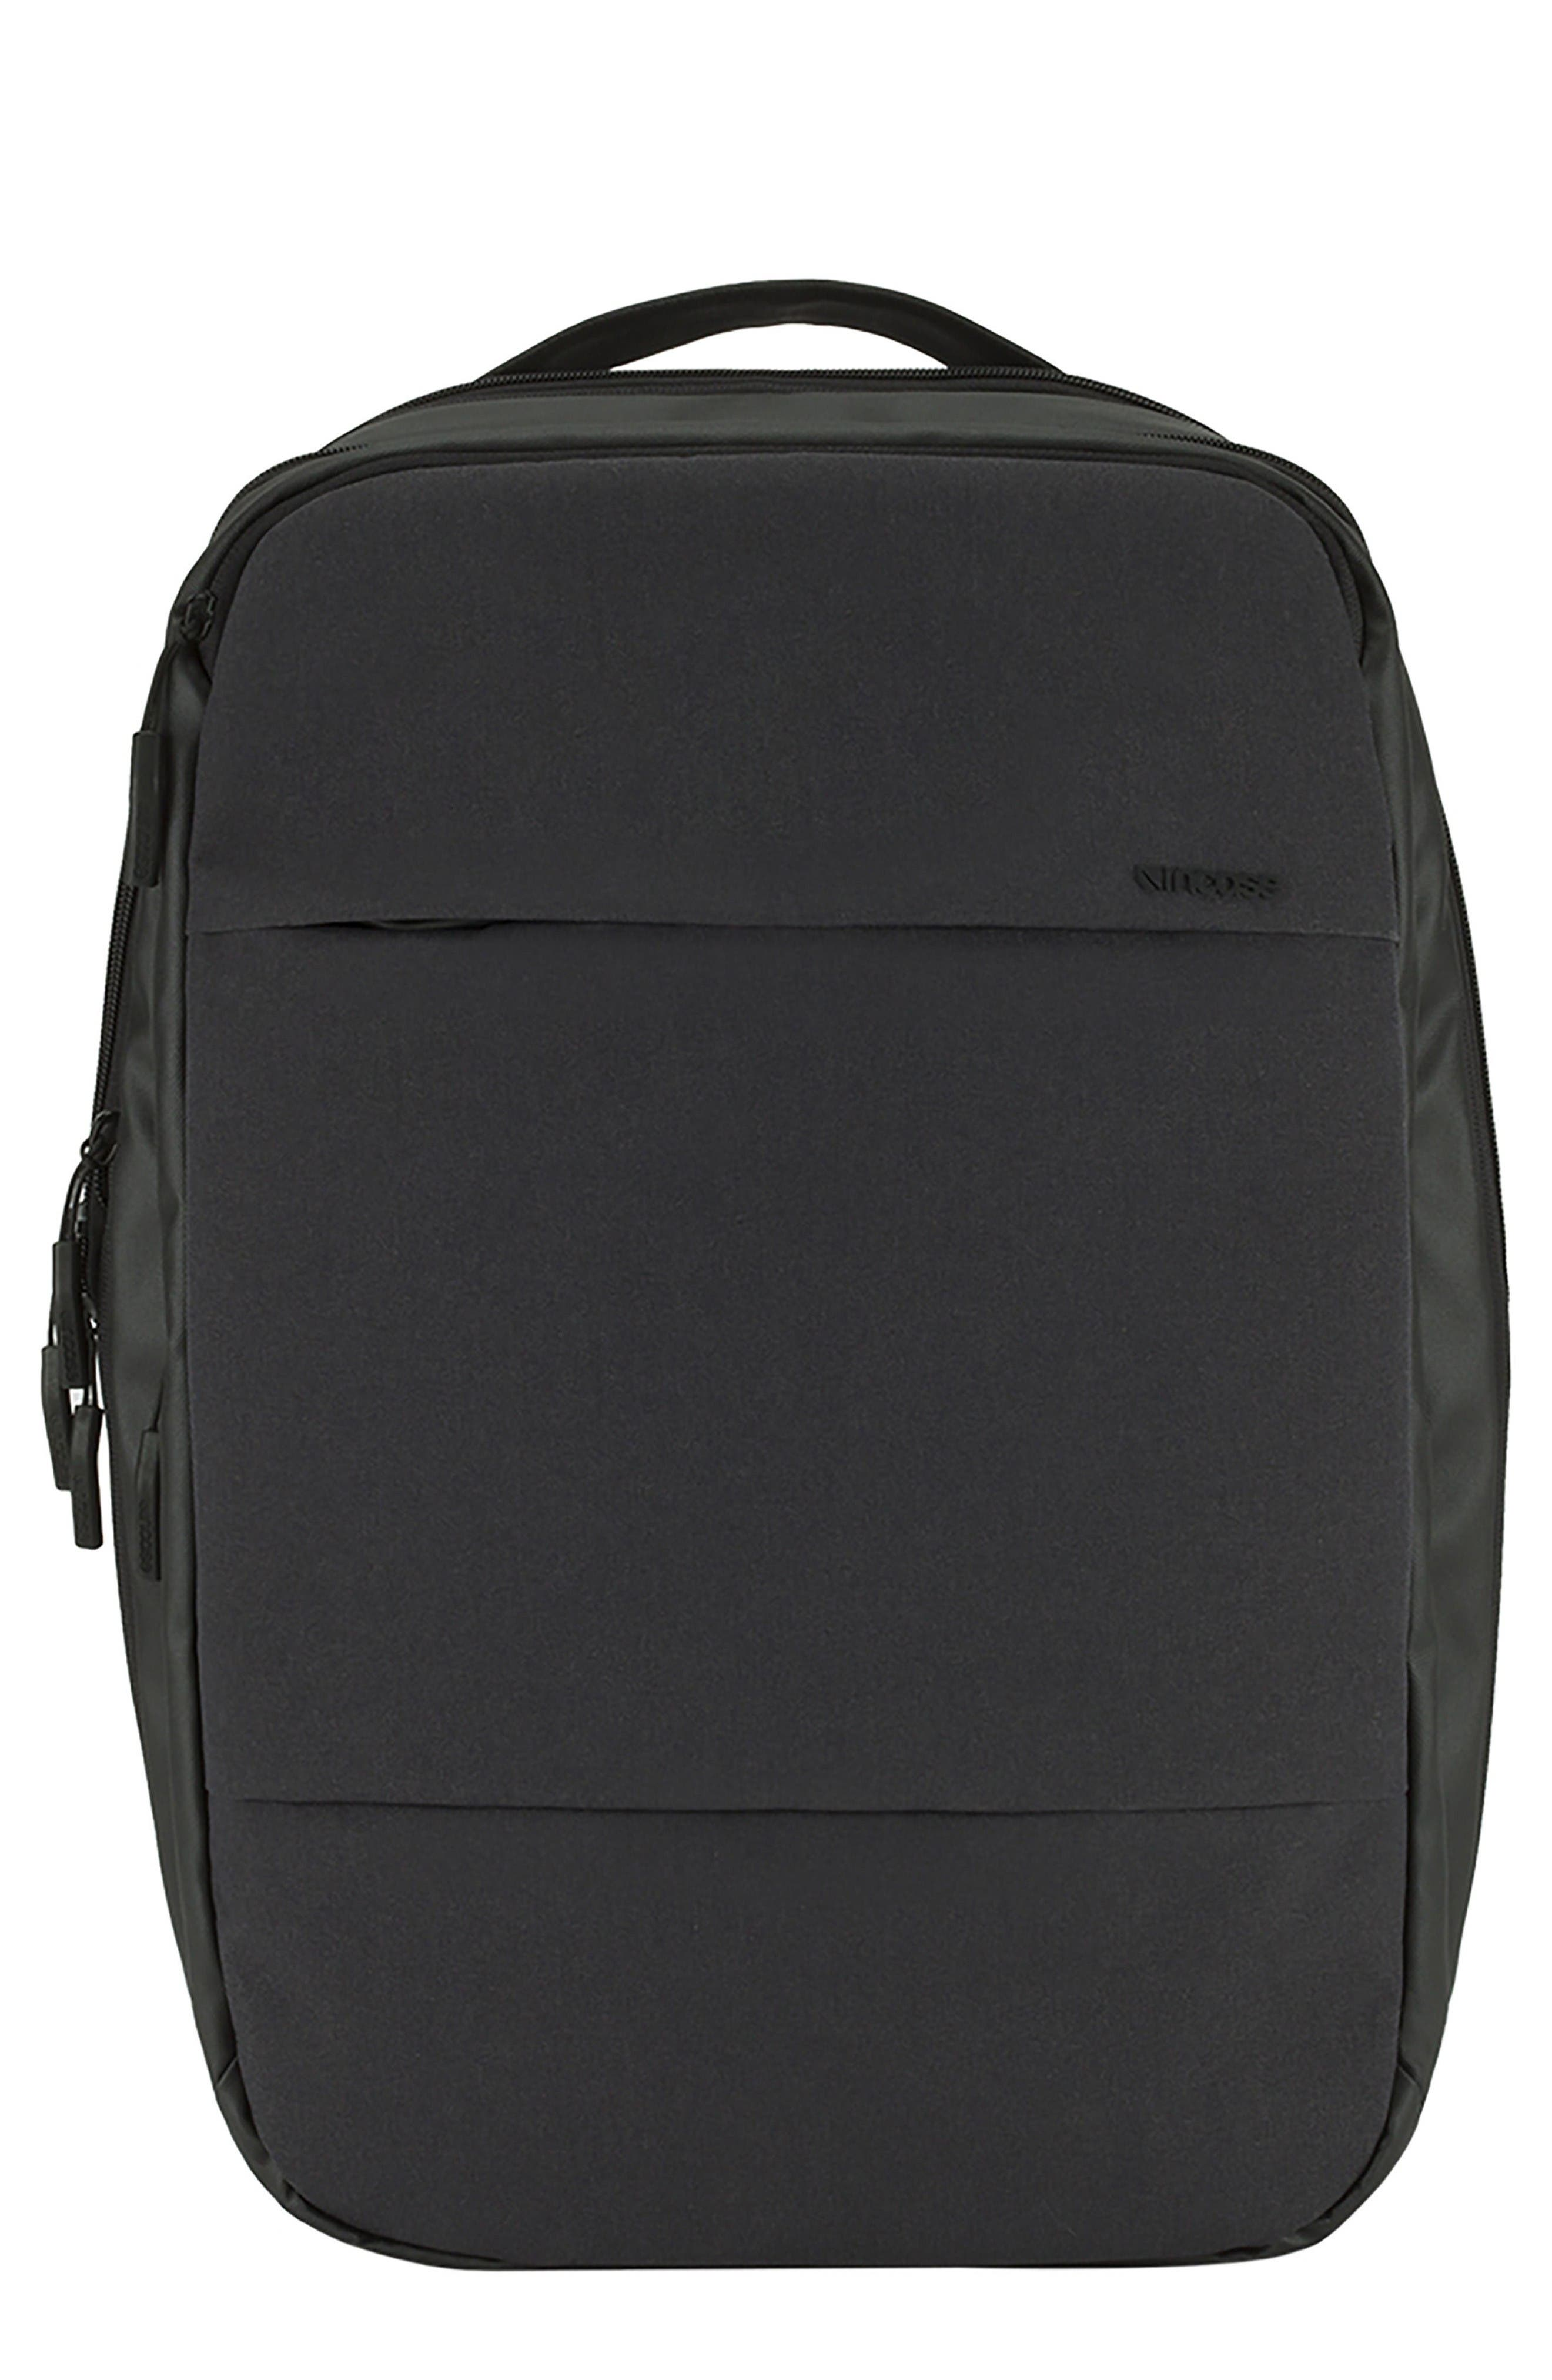 City Commuter Backpack,                             Main thumbnail 1, color,                             Black